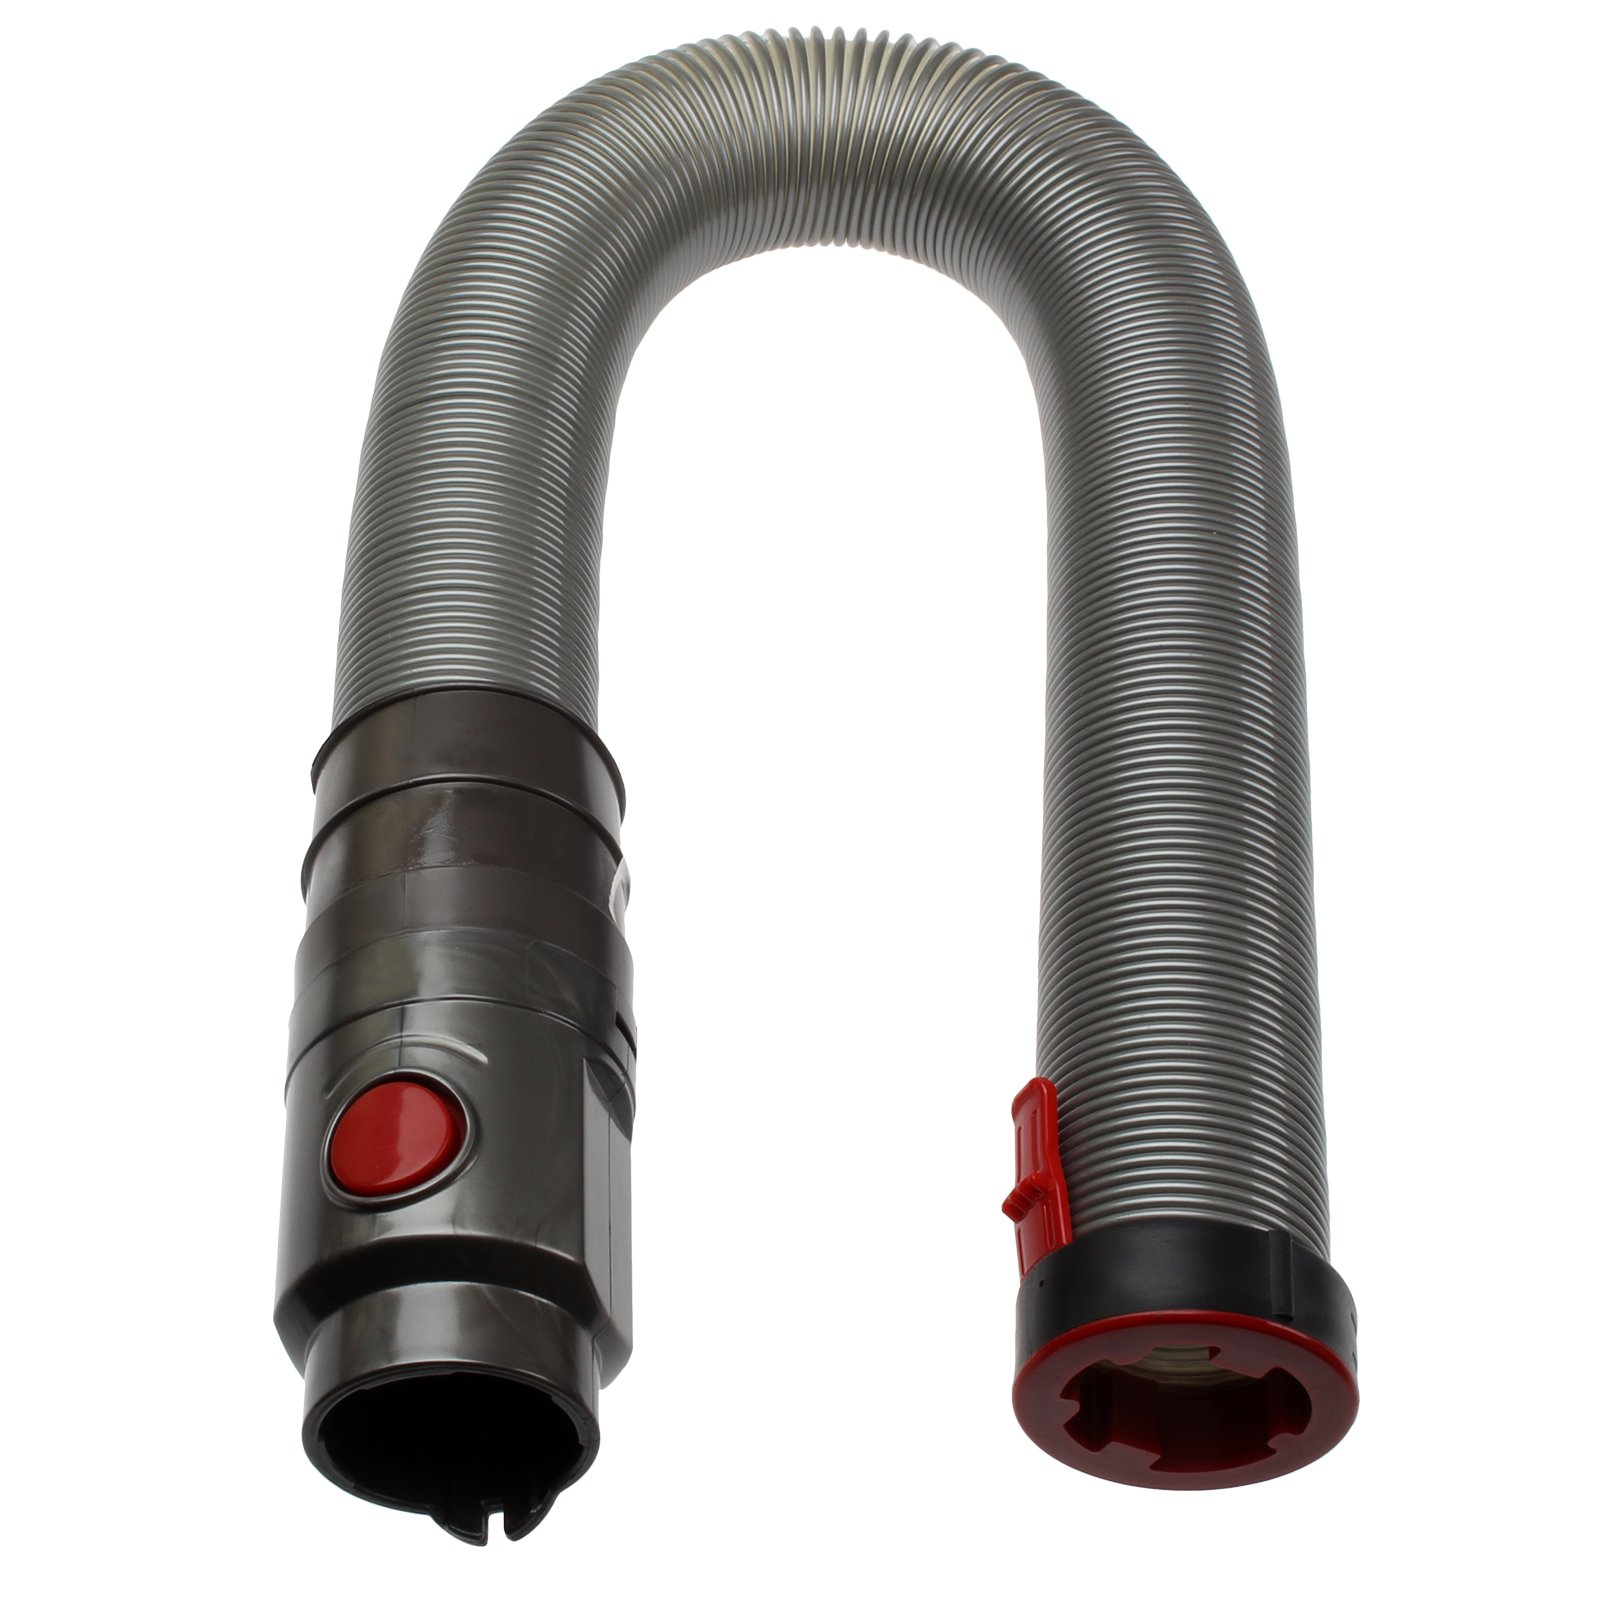 Aftermarket Hose Assembly Grey/Red Designed to Fit Dyson DC40 & DC41 Model Vacuums by Aftermarket